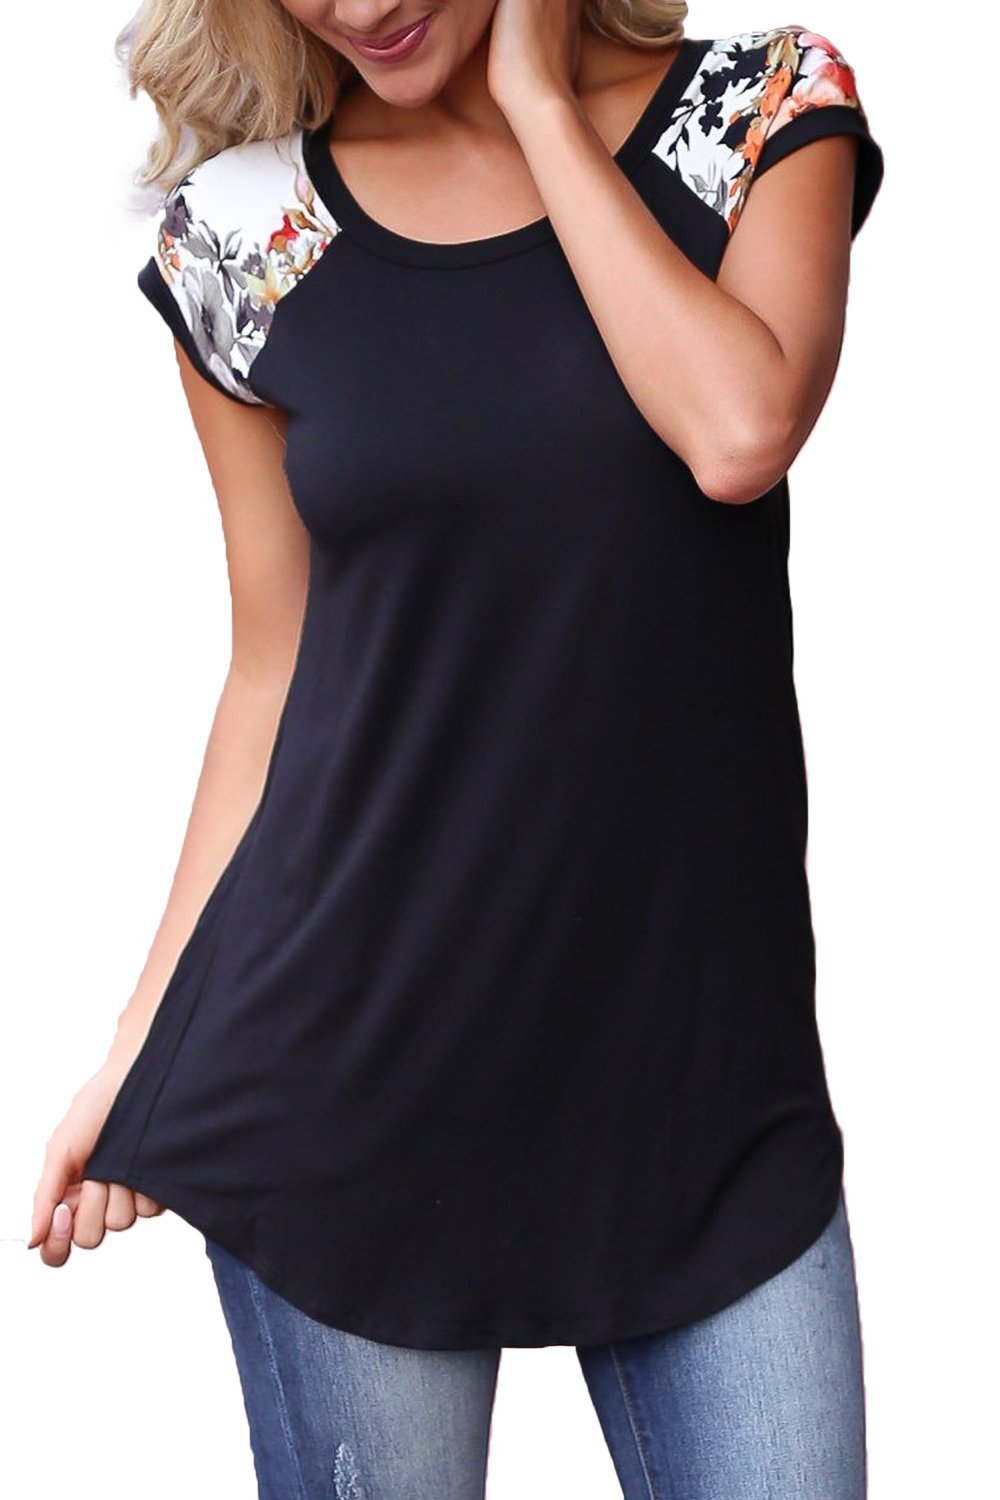 Allimy Women Summer T Shirts Casual Cute Round Neck Short Sleeve Floral Tunic Tops Blouses Black 2X